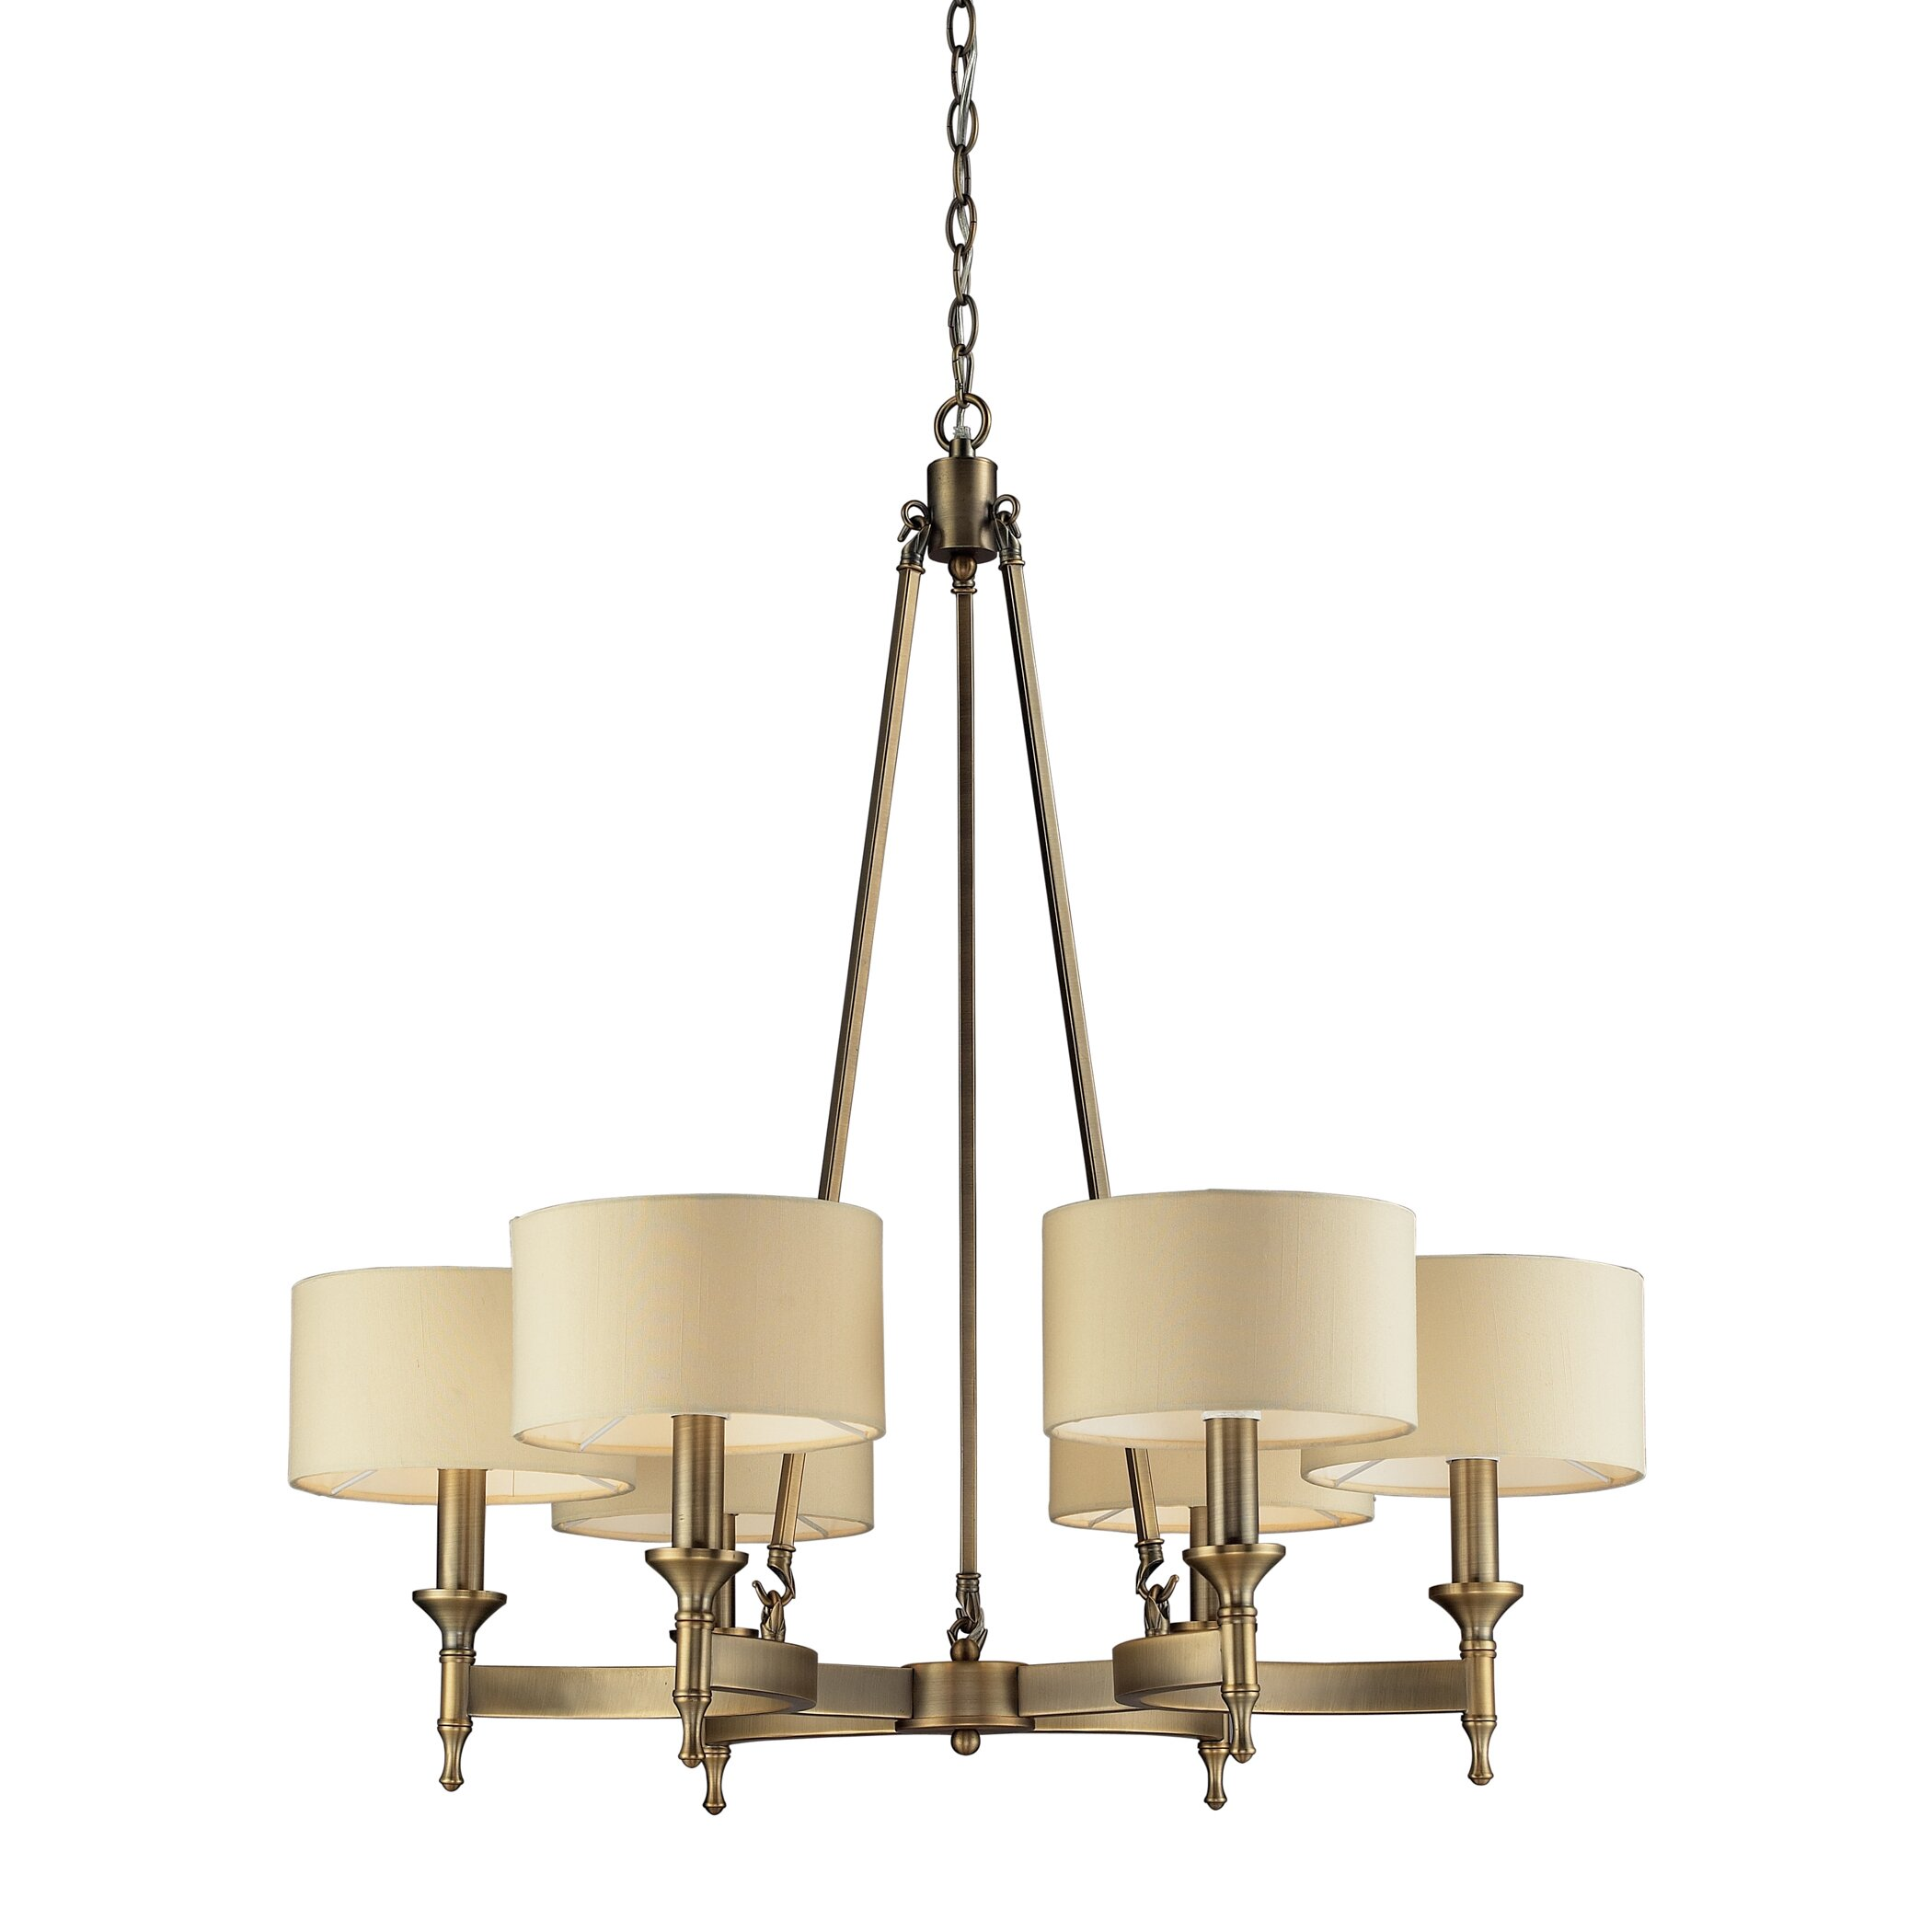 Wayfair Chandelier: 6 Light Chandelier